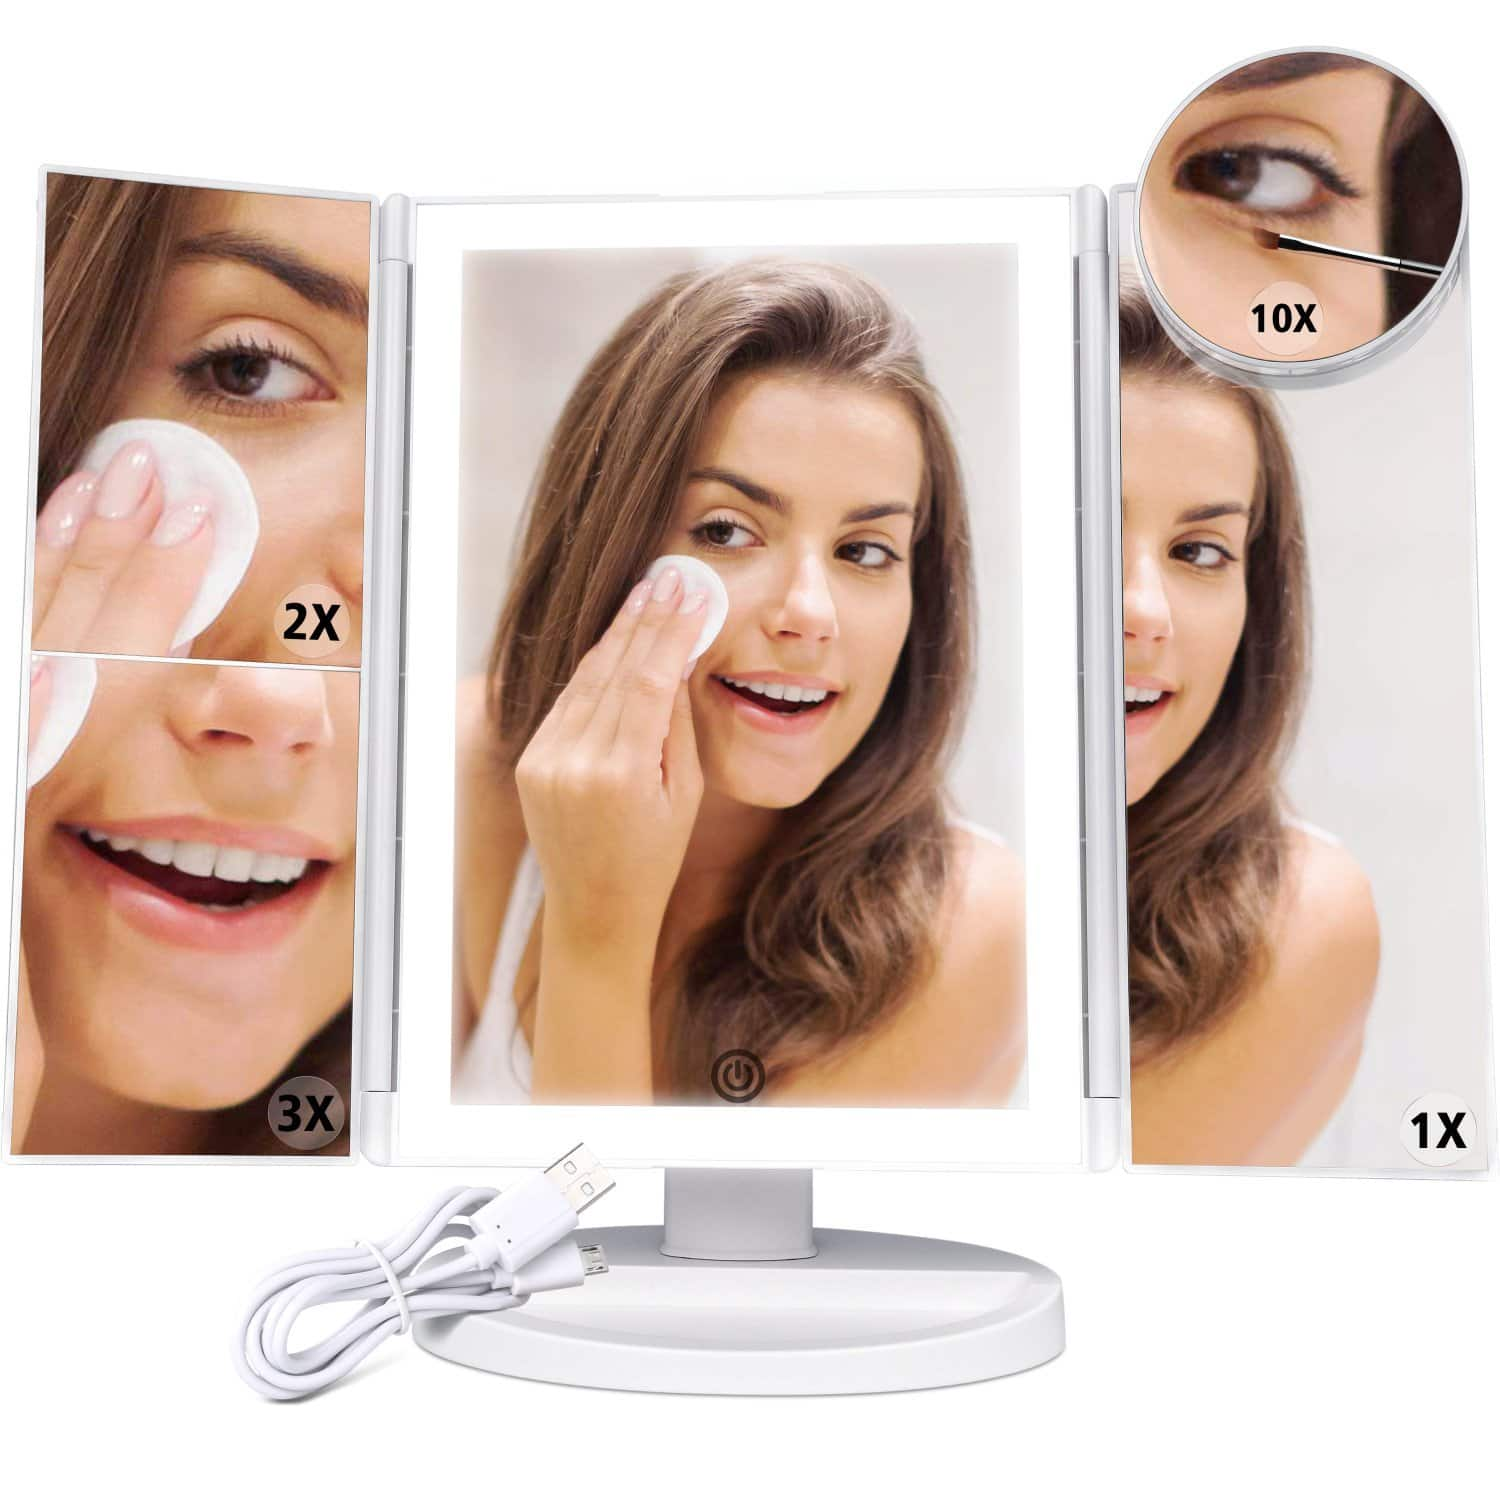 F-color 2x/3x/10x Magnifying 4 Sides LED Light Bars Makeup Mirror for $18.99 Shipped w/Prime